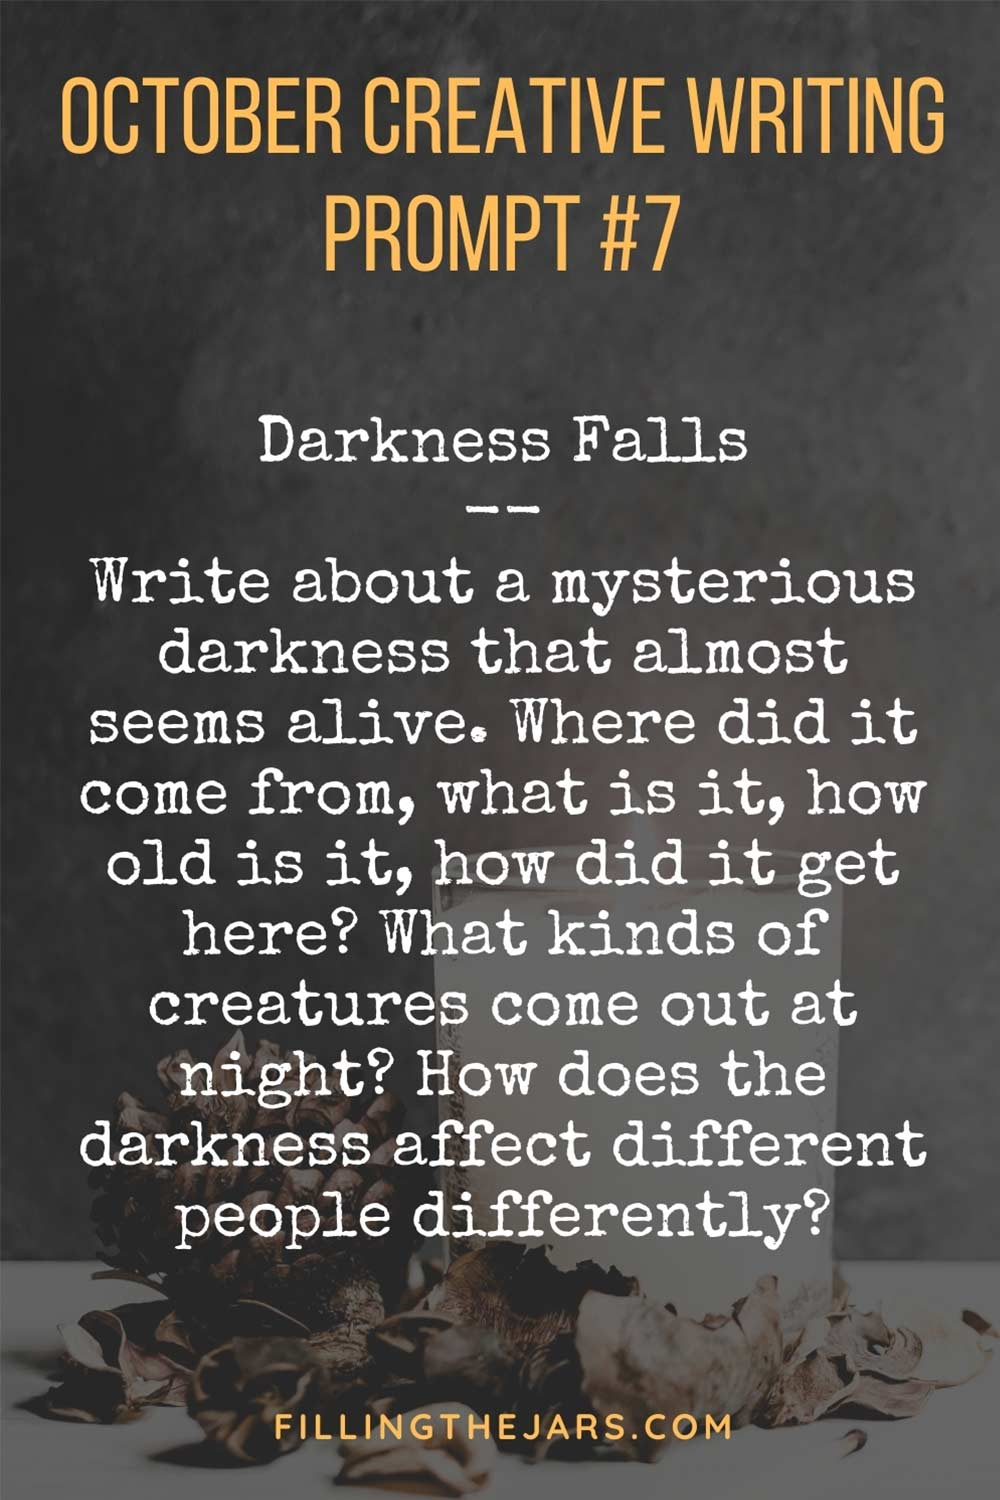 October creative writing prompt for adults in white text on dark moody background.